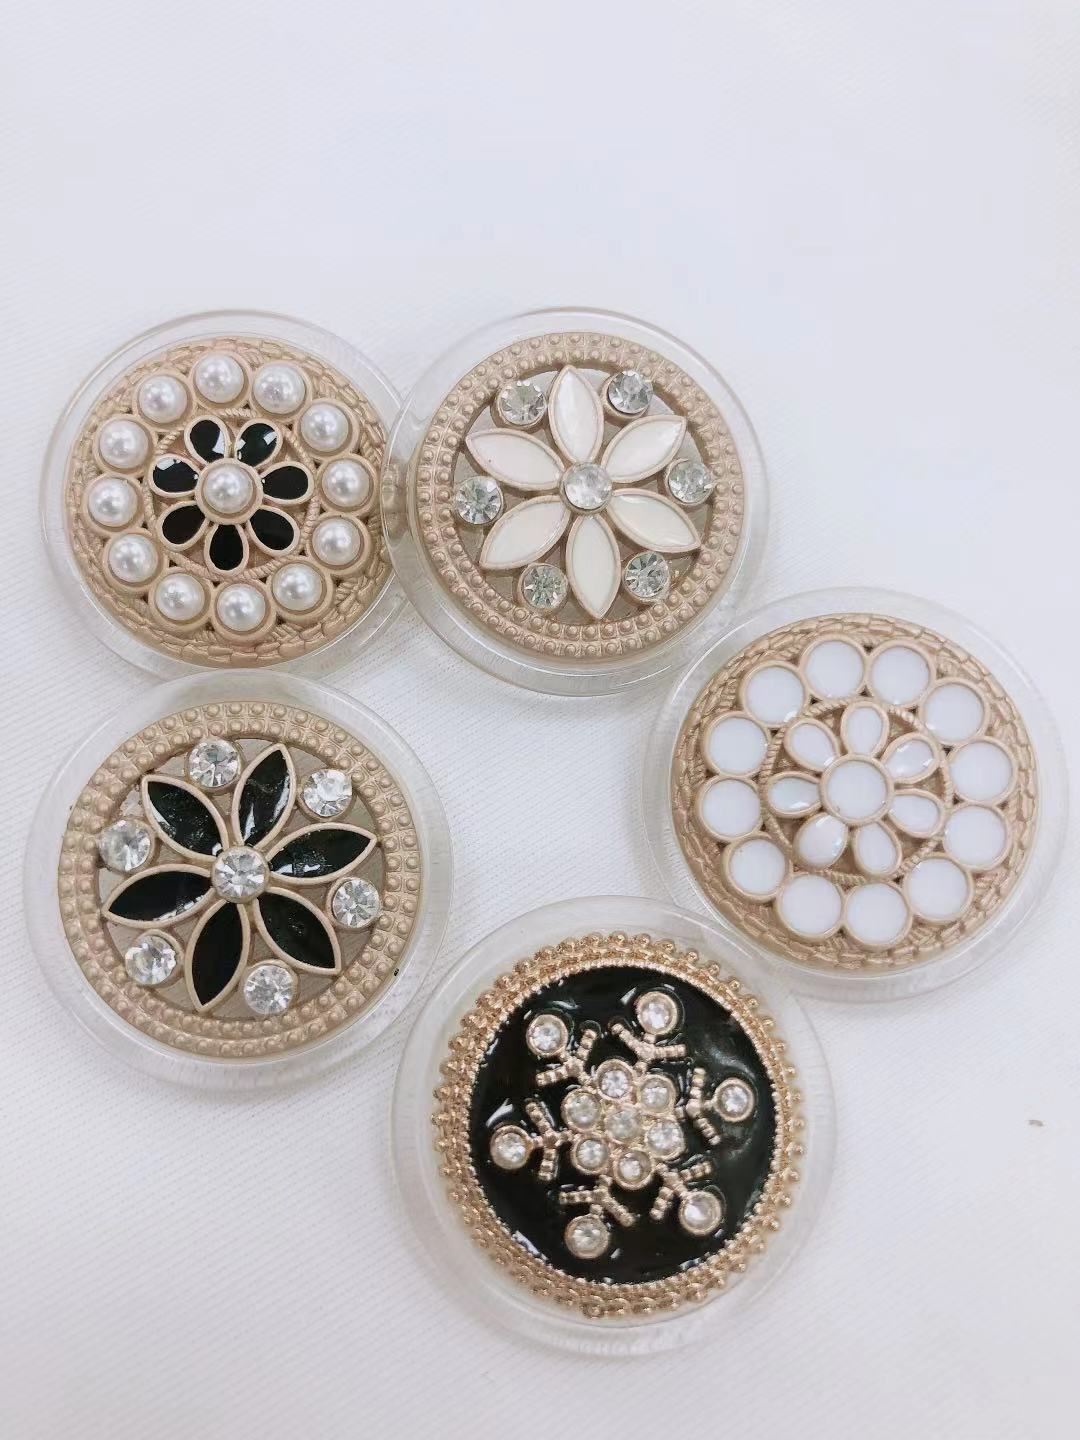 5pcs Faux Pearl Gold Metal Women Coat Buttons For Clothing Garment Decorative Large Vintage Buttons Sewing Accessories Wholesale